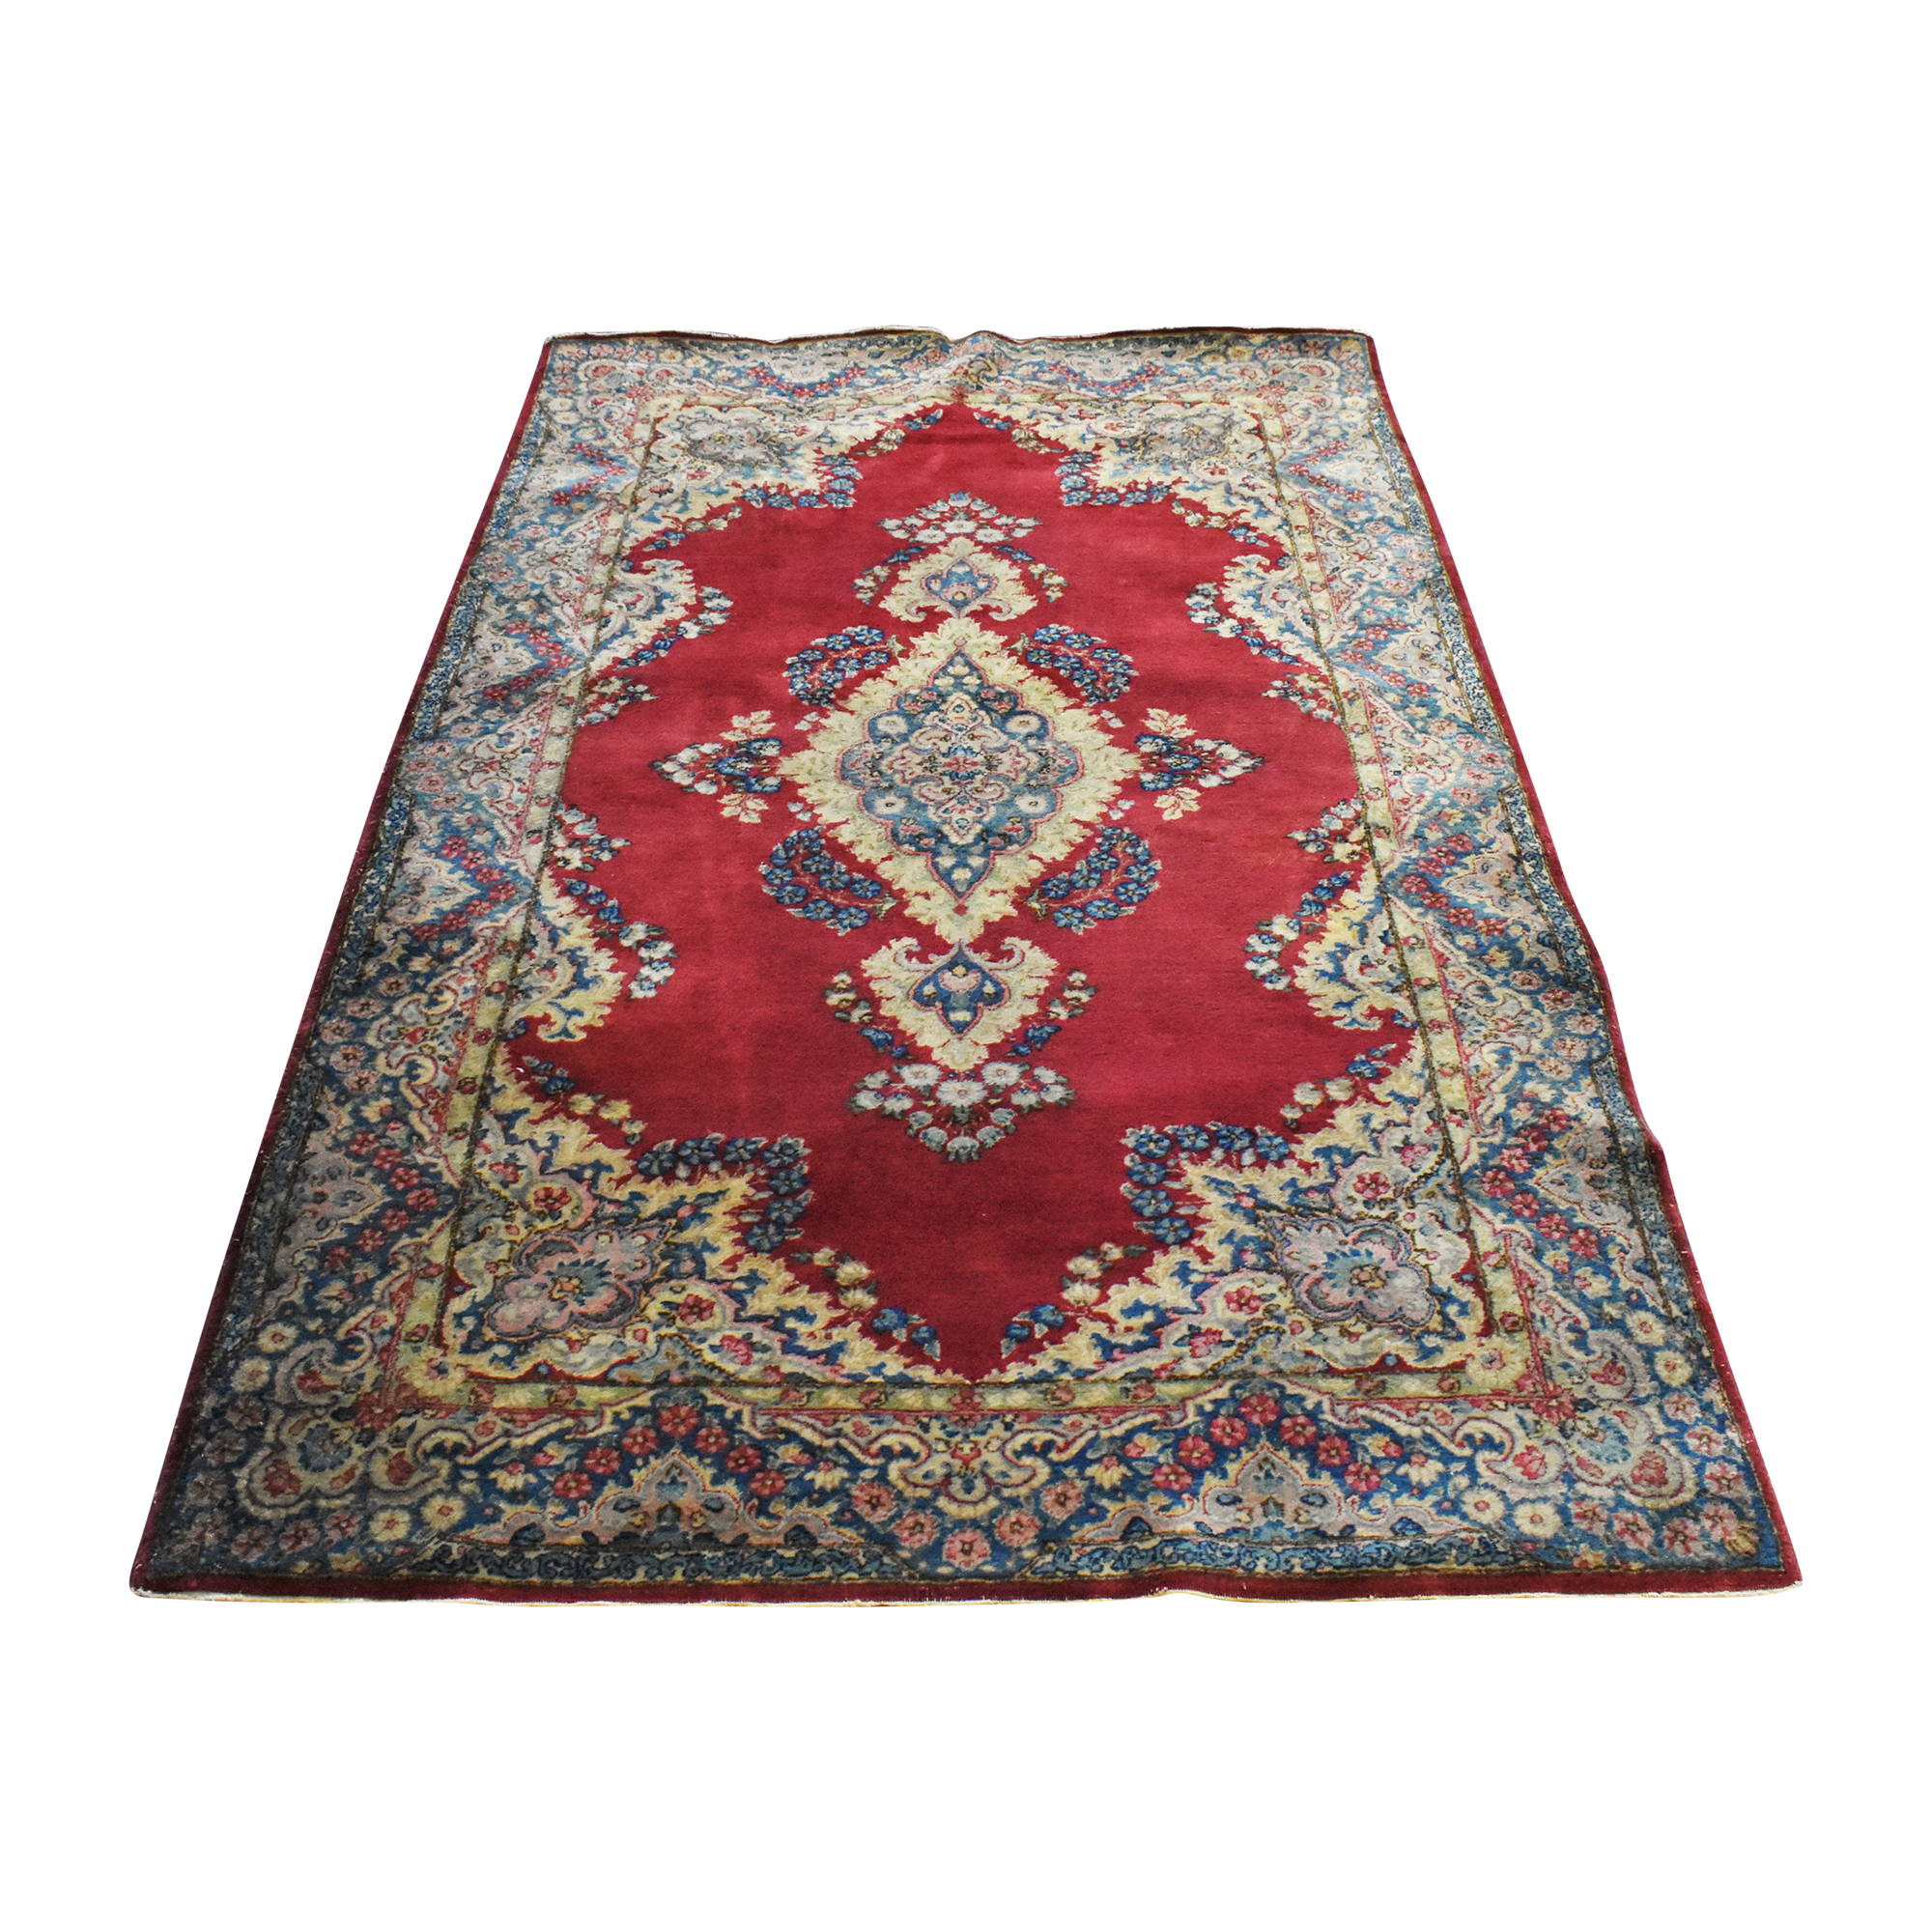 Patterned Persian-Style Area Rug ct